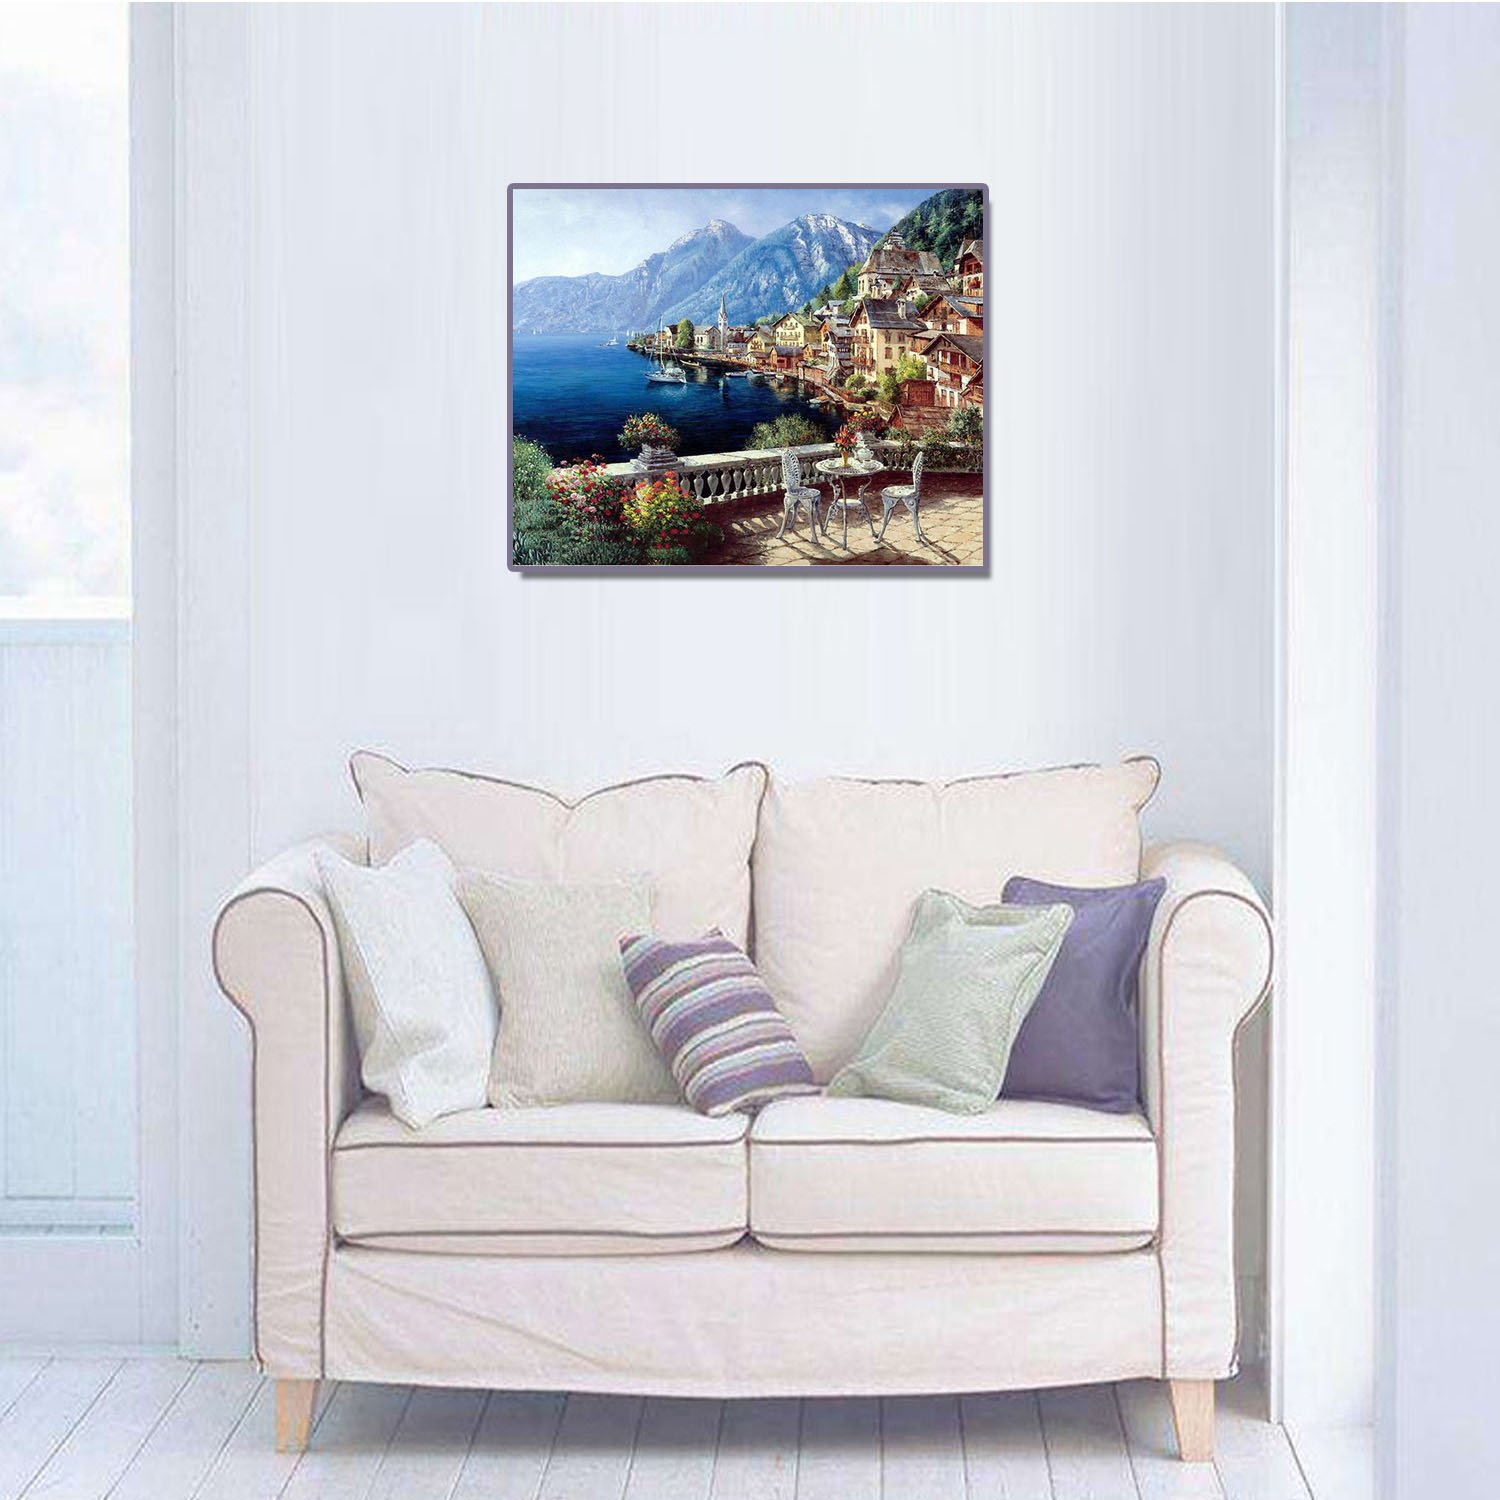 Amazon.com: Gosear Diy Oil Painting Paint By Numbers ...